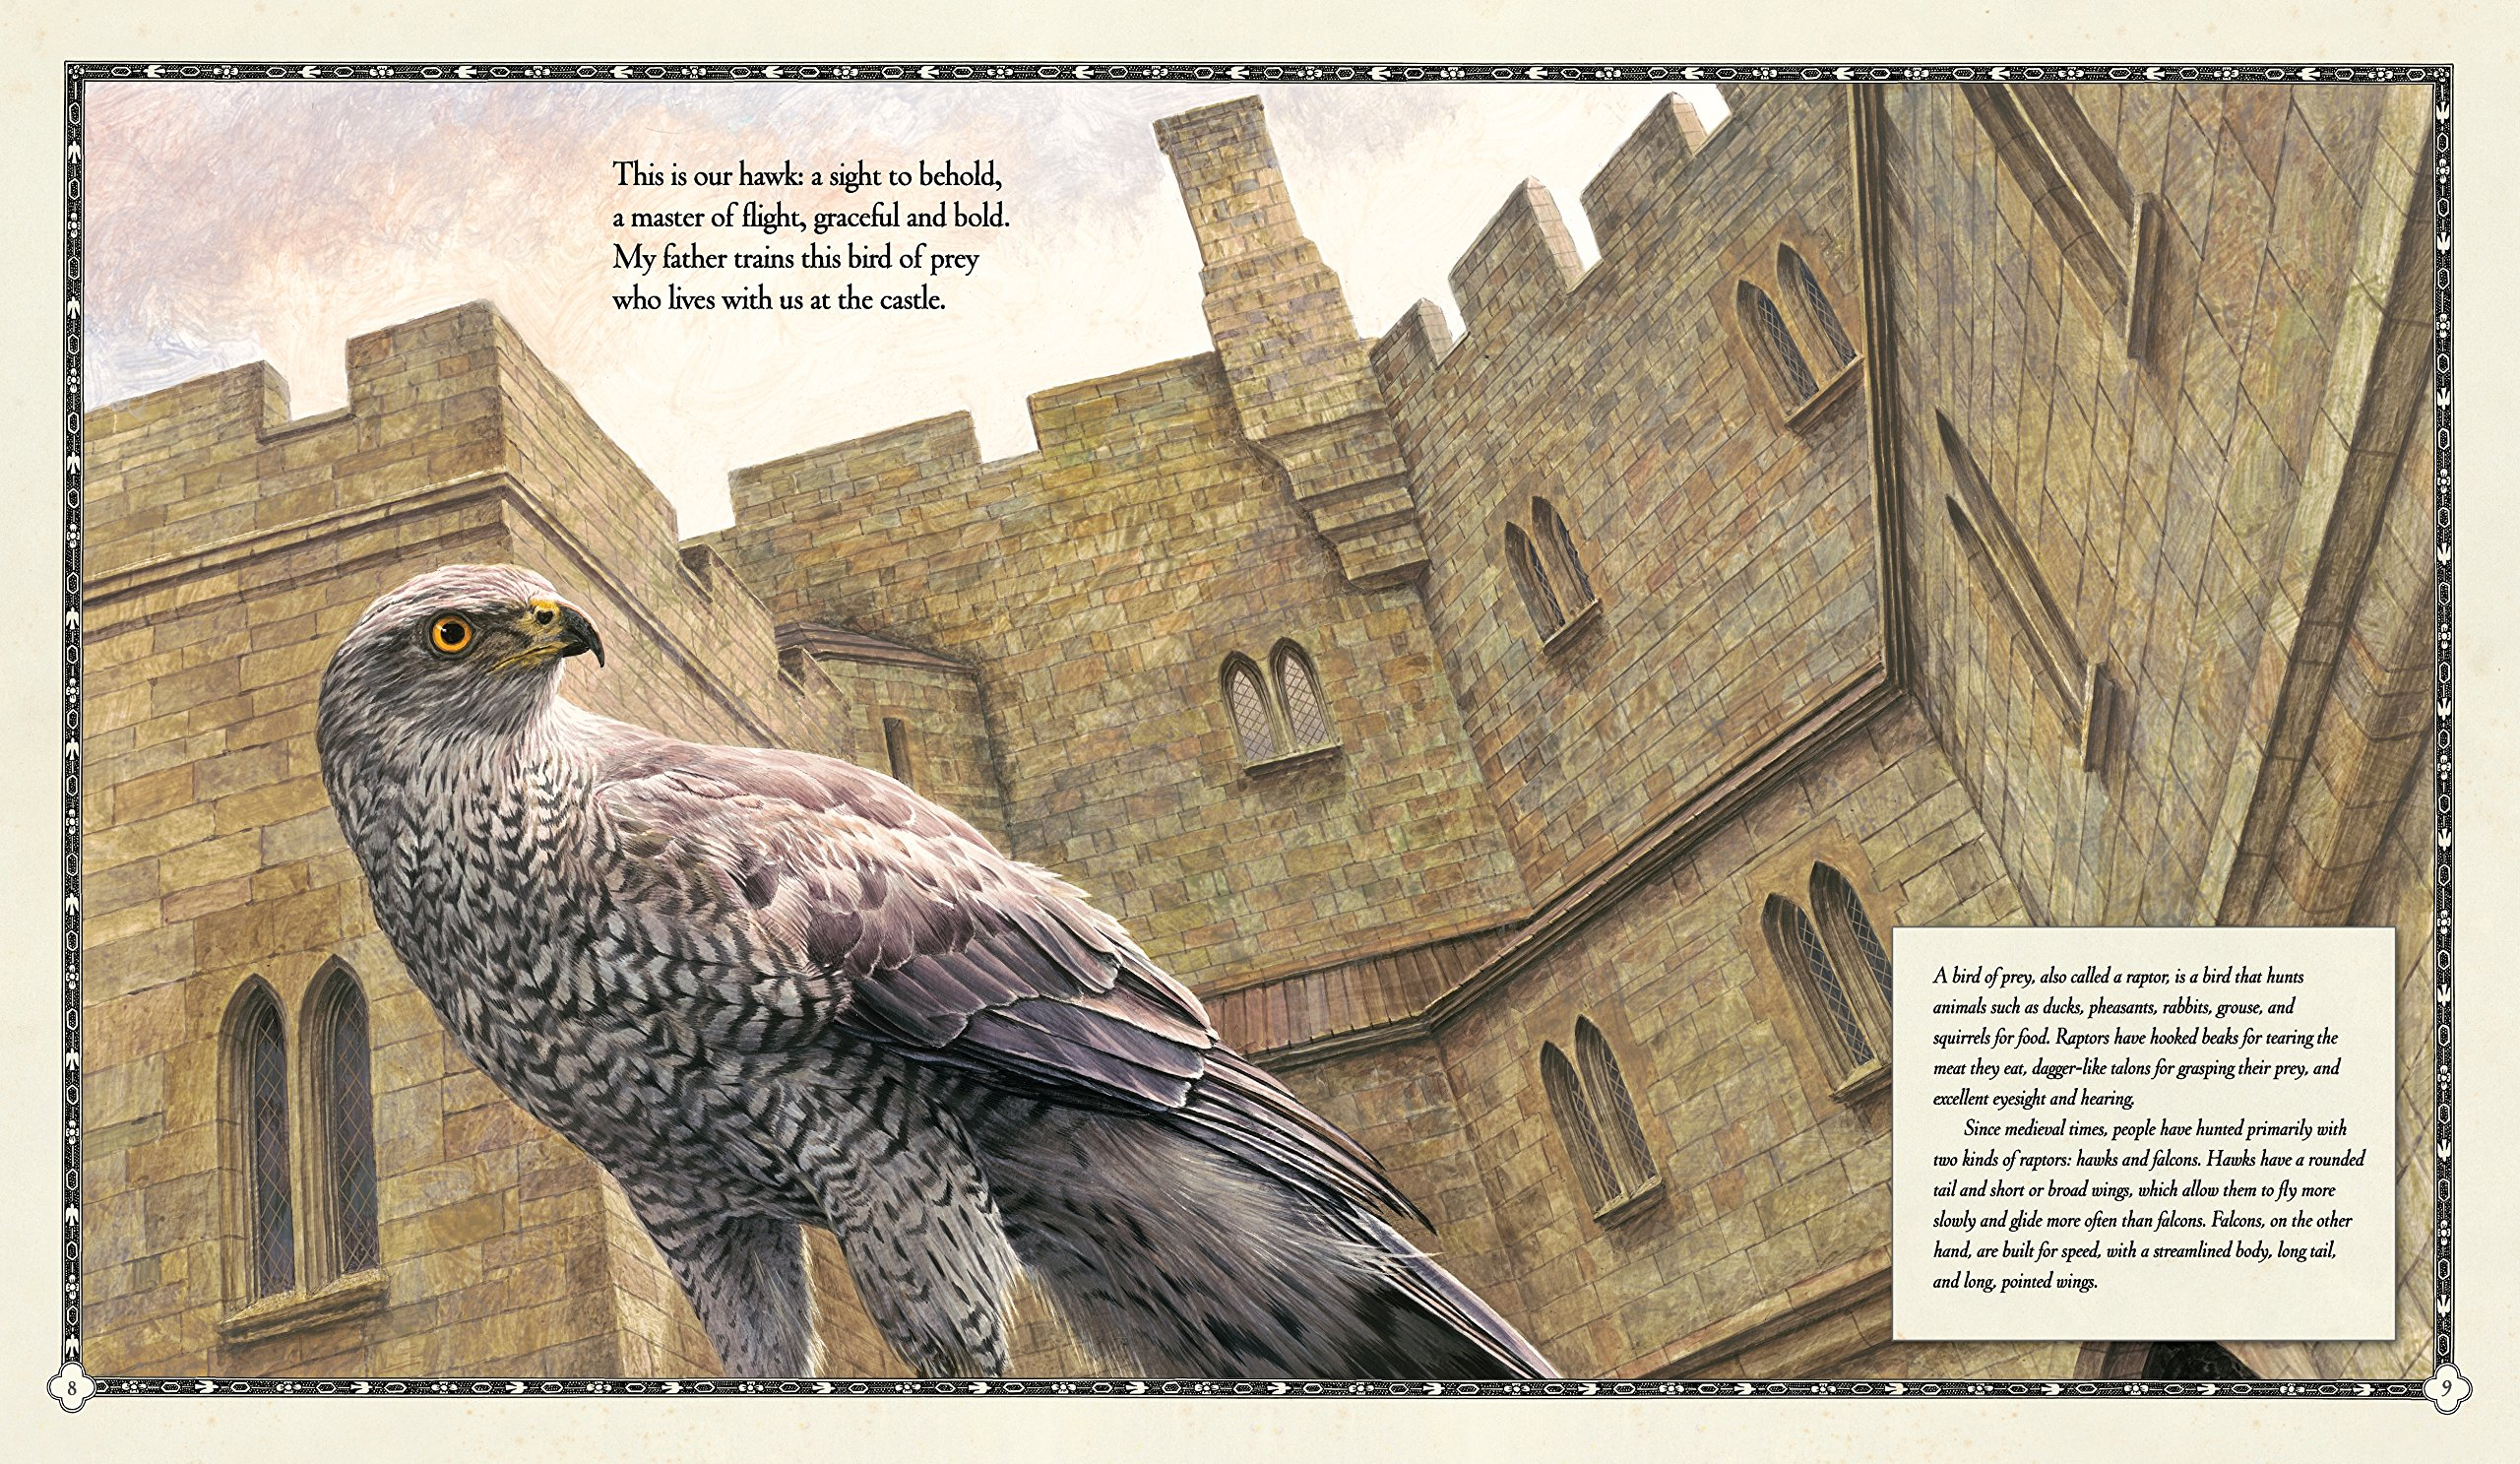 celebrate-picture-books-picture-book-review-the-hawk-of-the-castle-hawk